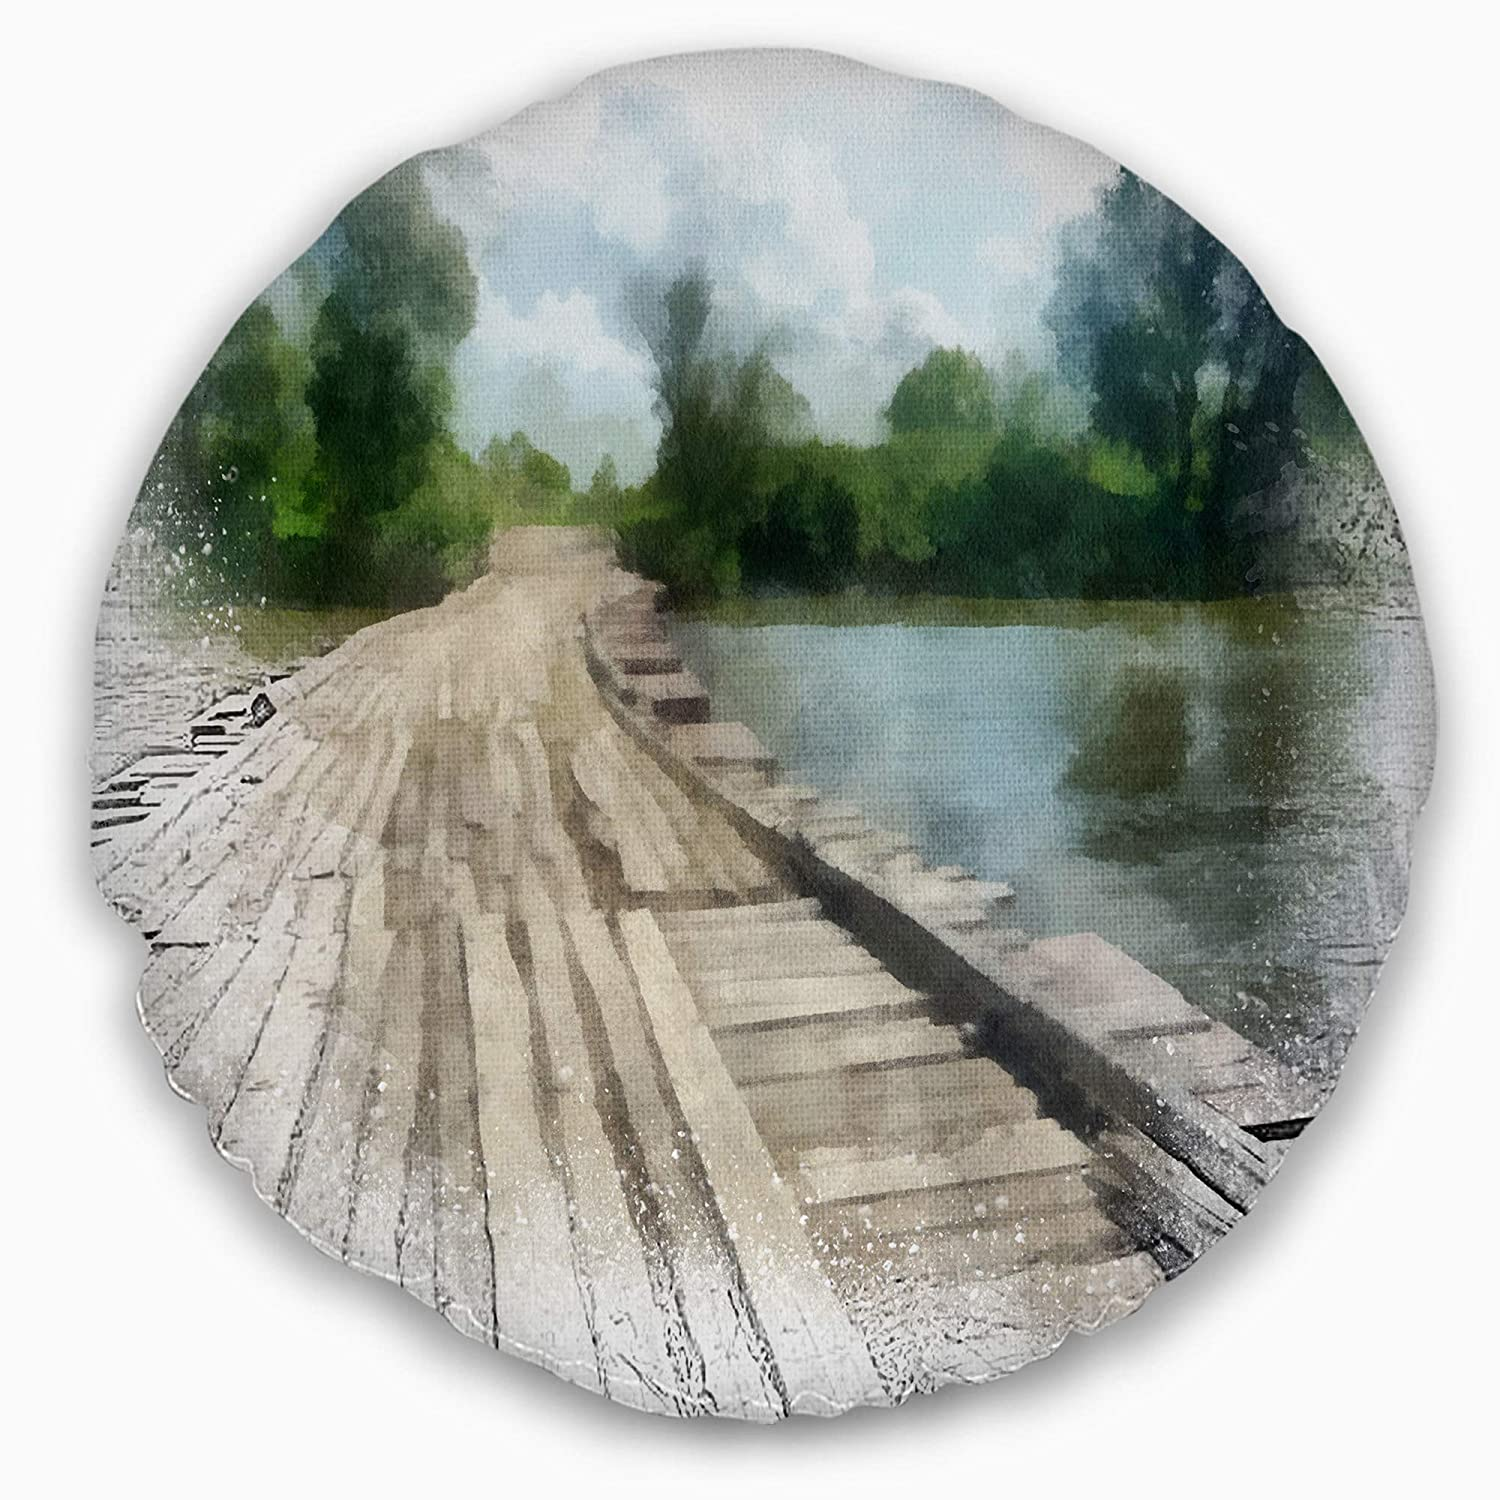 Designart CU13784-20-20-C Bridge Over Waterfall in Forest Landscape Printed Round Cushion Cover for Living Room Sofa Throw Pillow 20 Insert Side